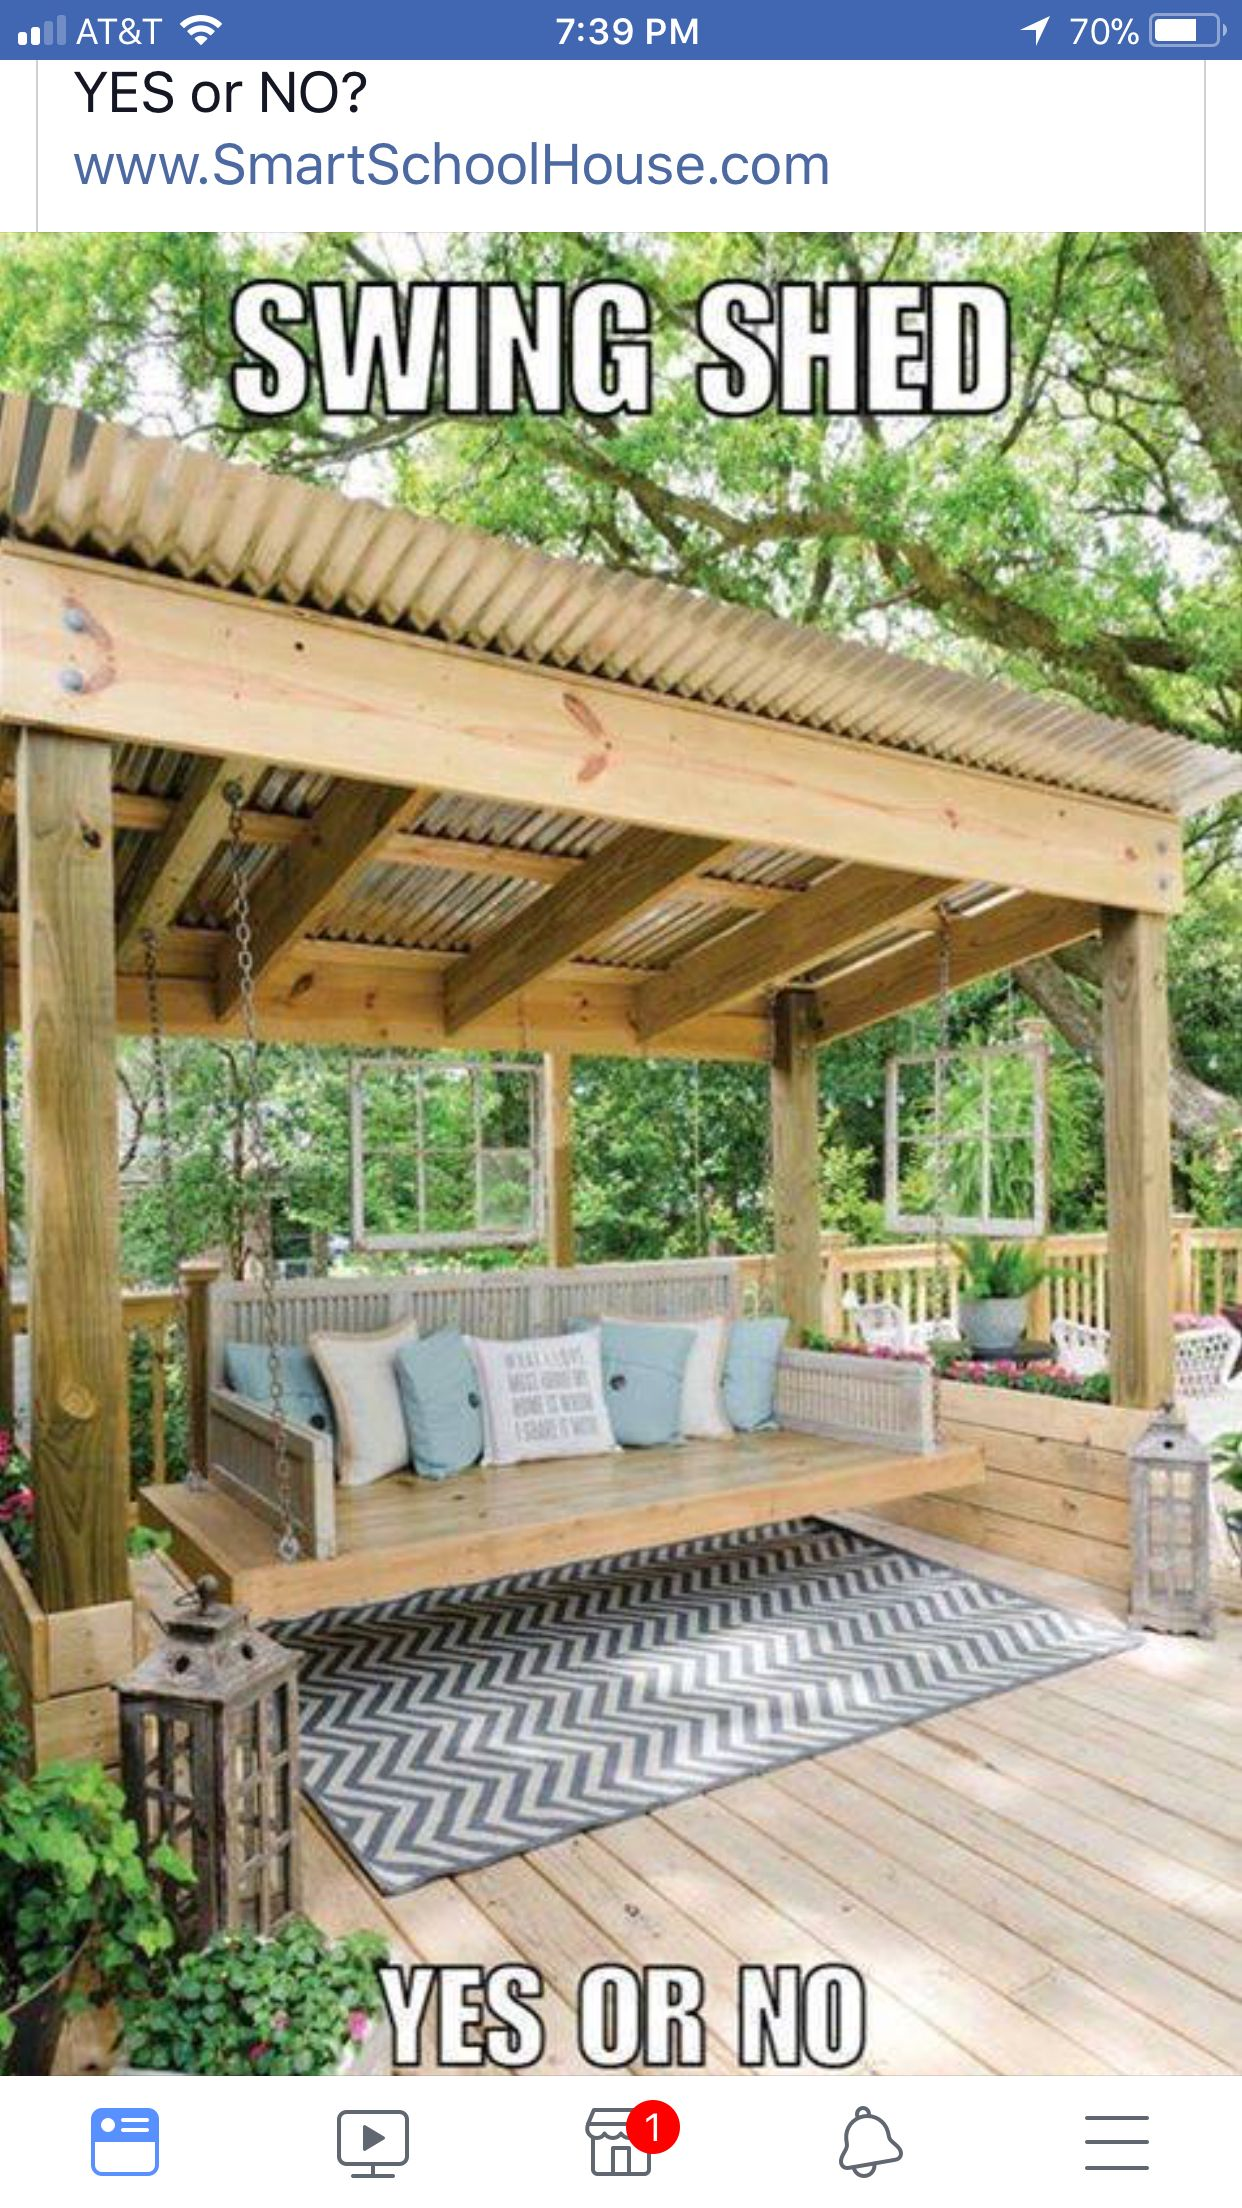 Pin by Michelle on For the home | Pinterest | Backyard, Yards and Patios